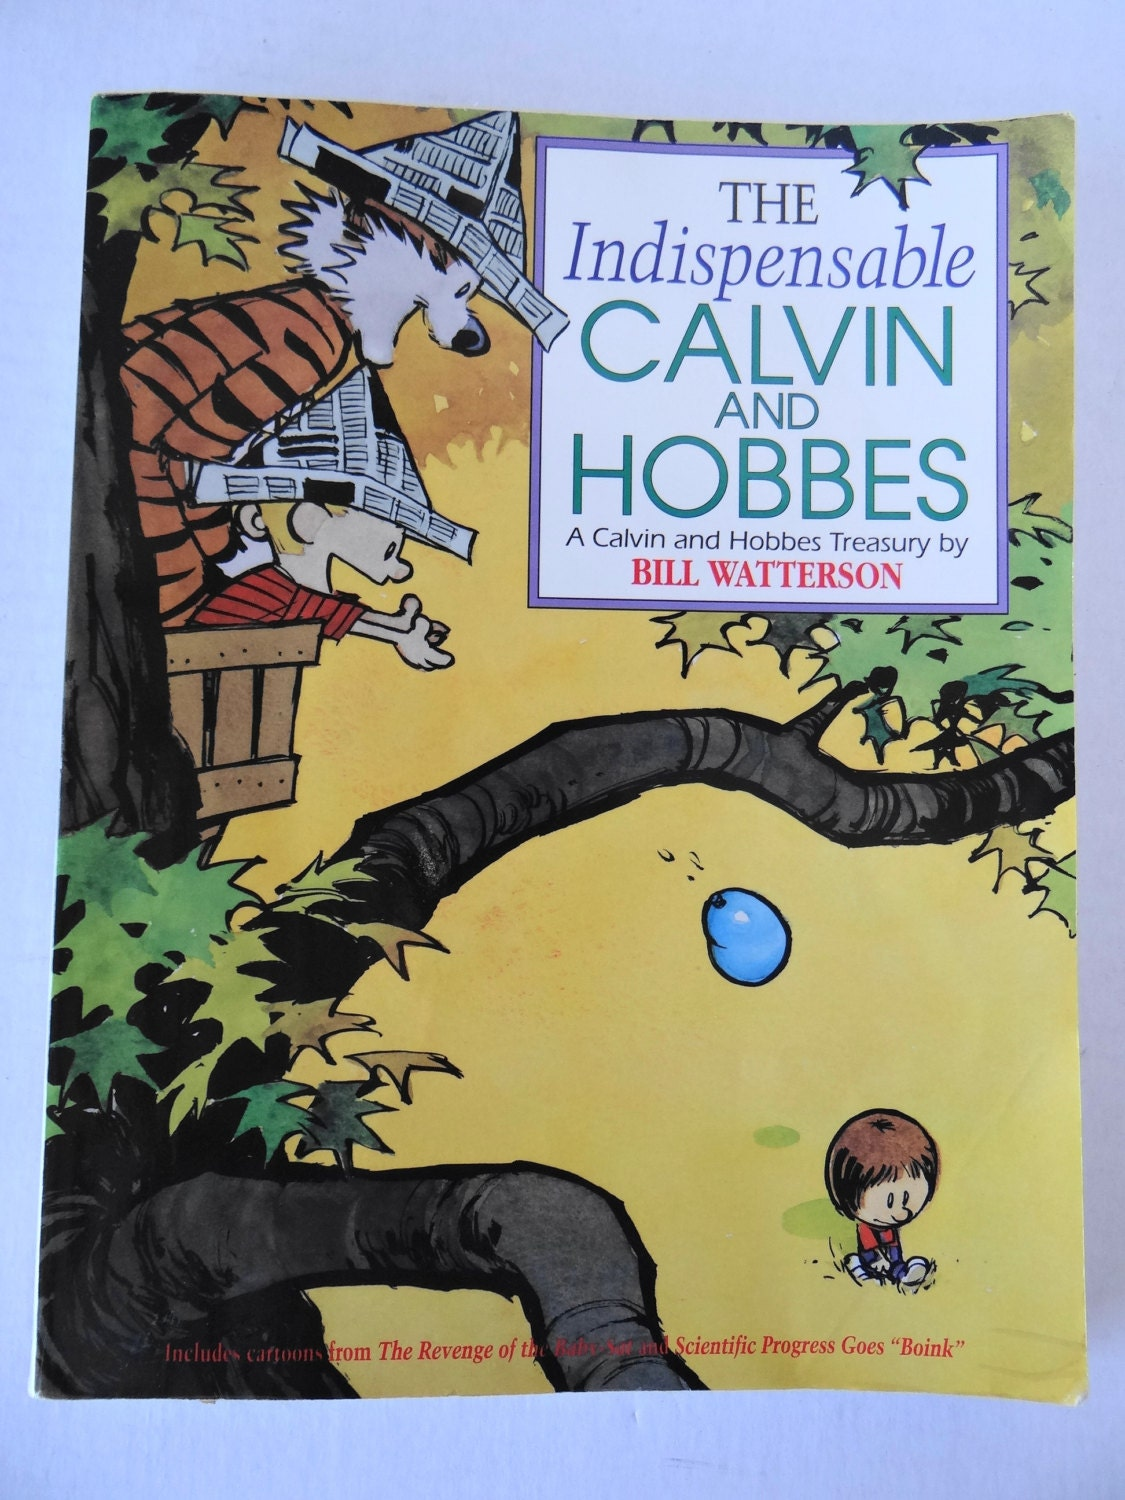 Vintage 1992 The Indispensable Calvin and Hobbes Treasury